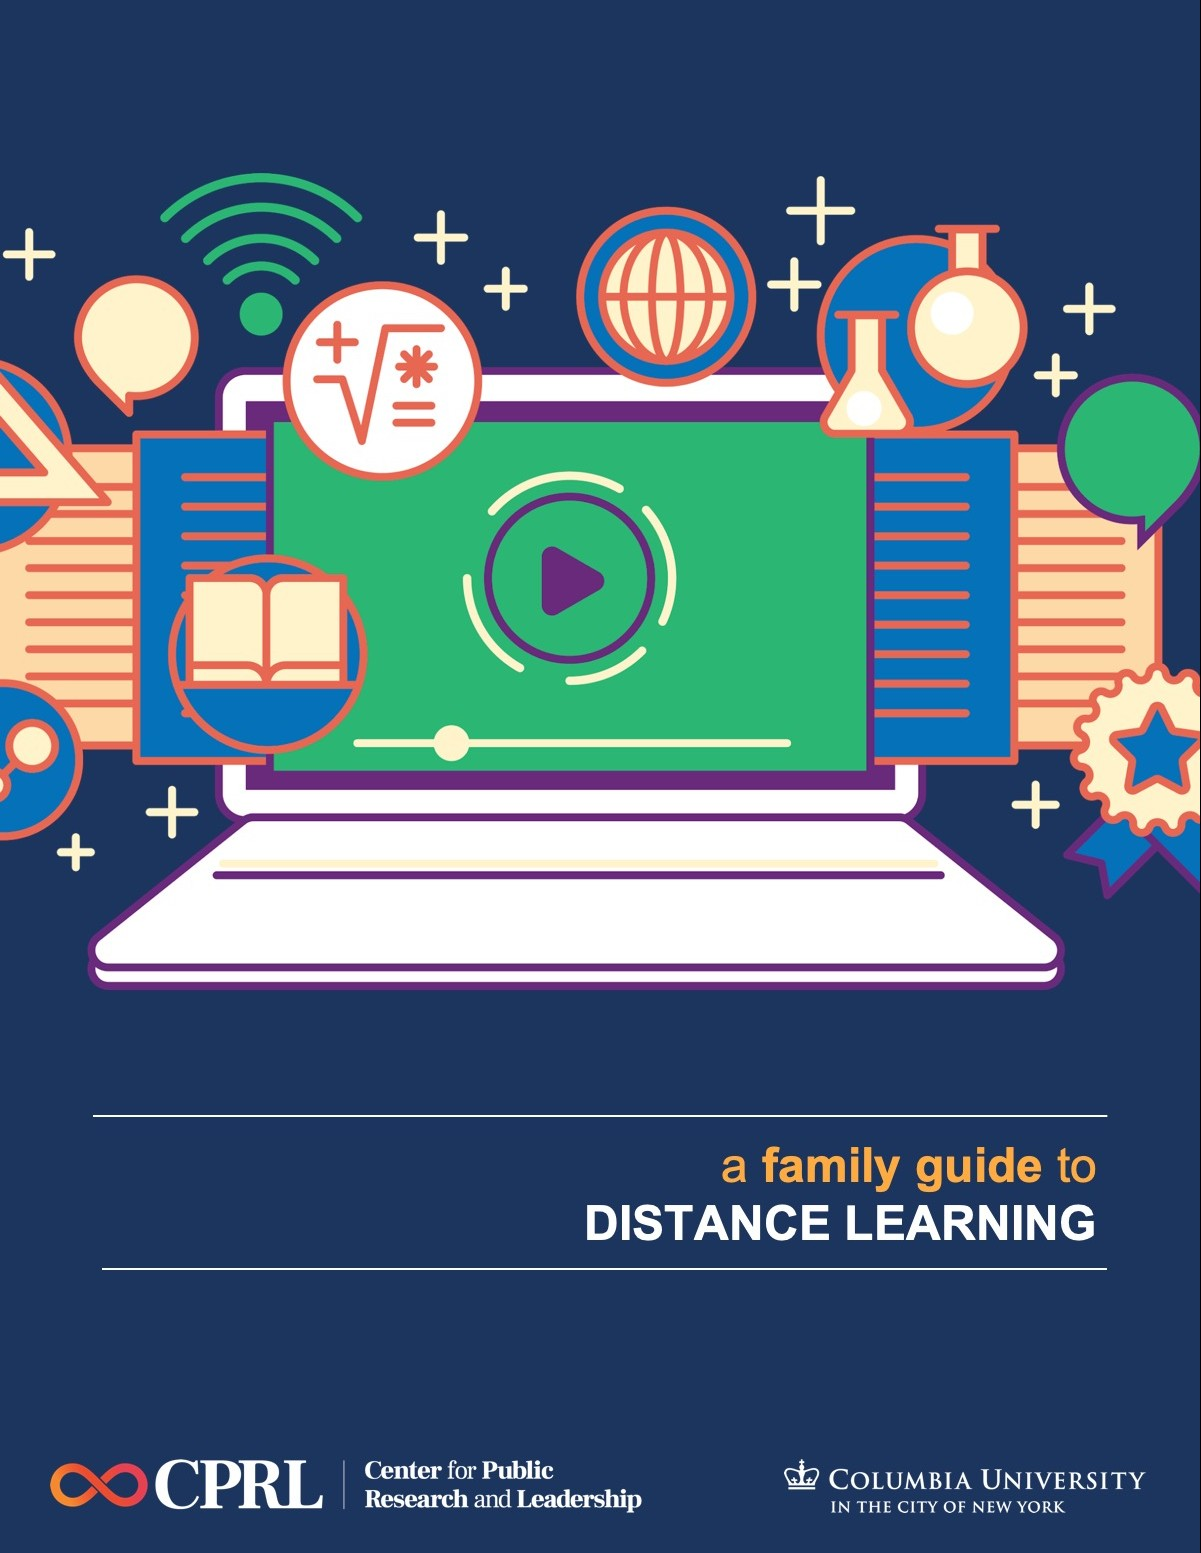 Cover to a family guide to distance learning which features a laptop surrounded by symbols related to teaching and learning